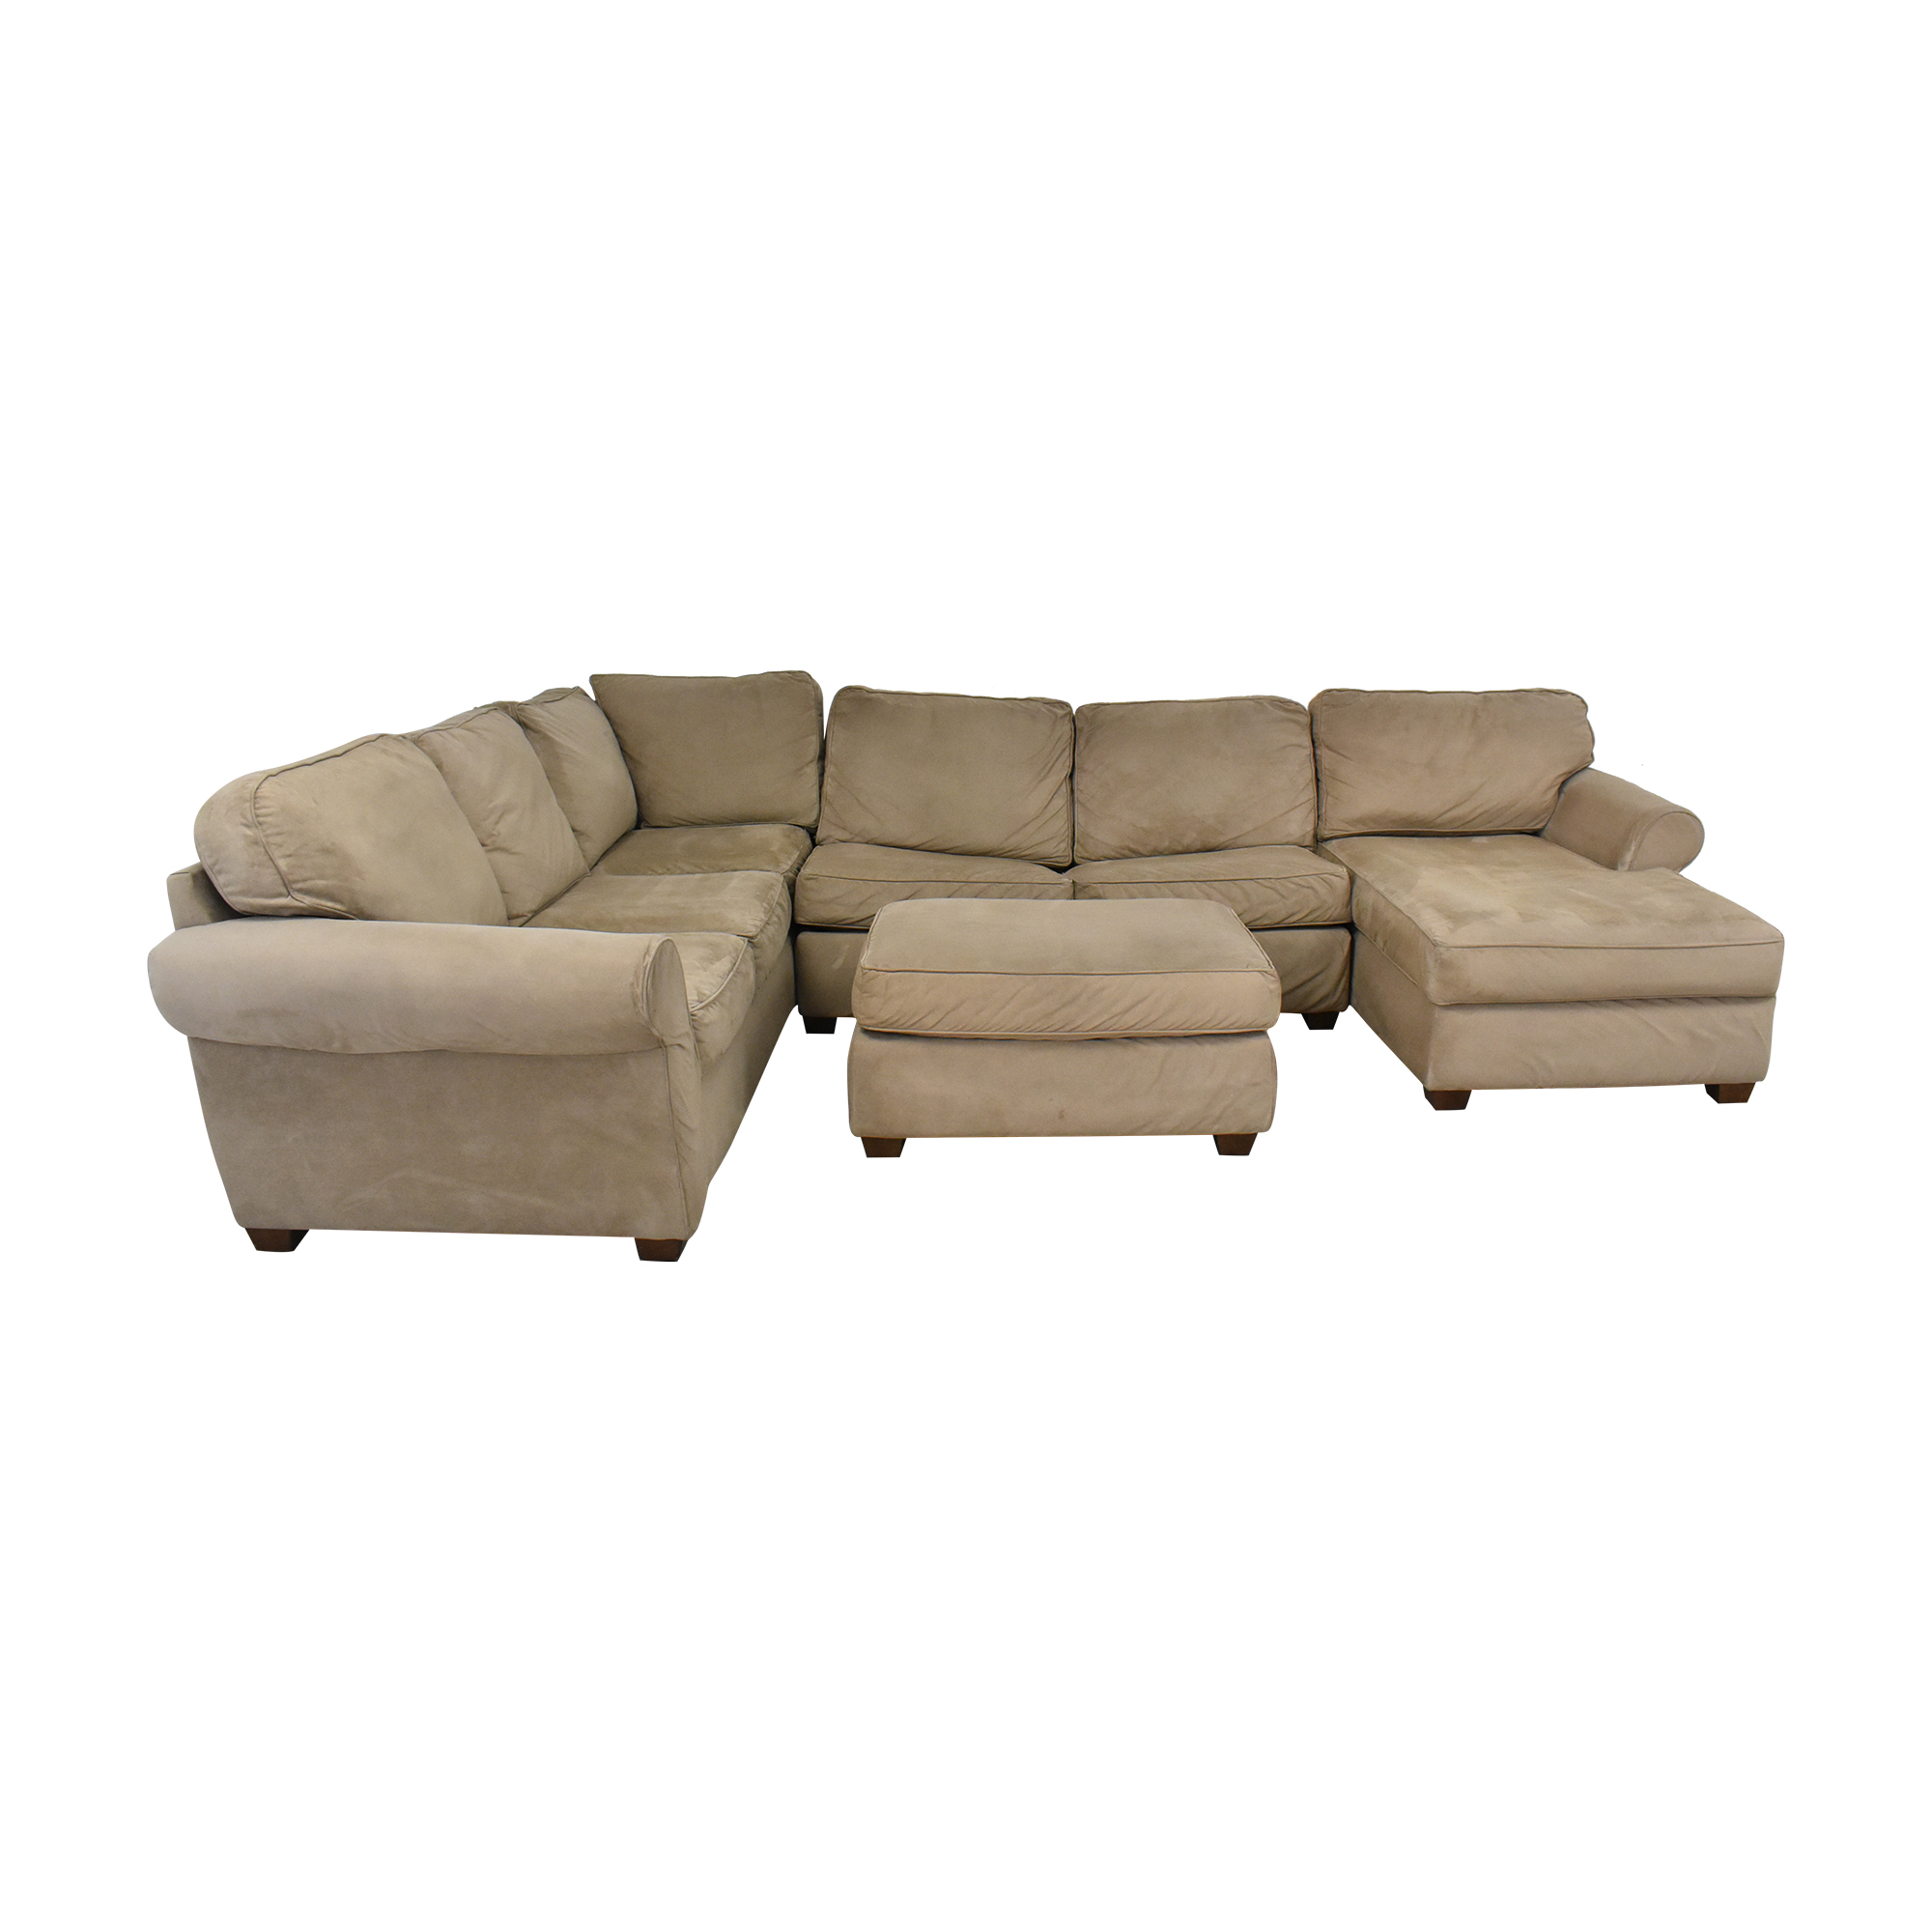 Macy's Macy's Chaise Sectional Sleeper Sofa with Ottoman Sectionals